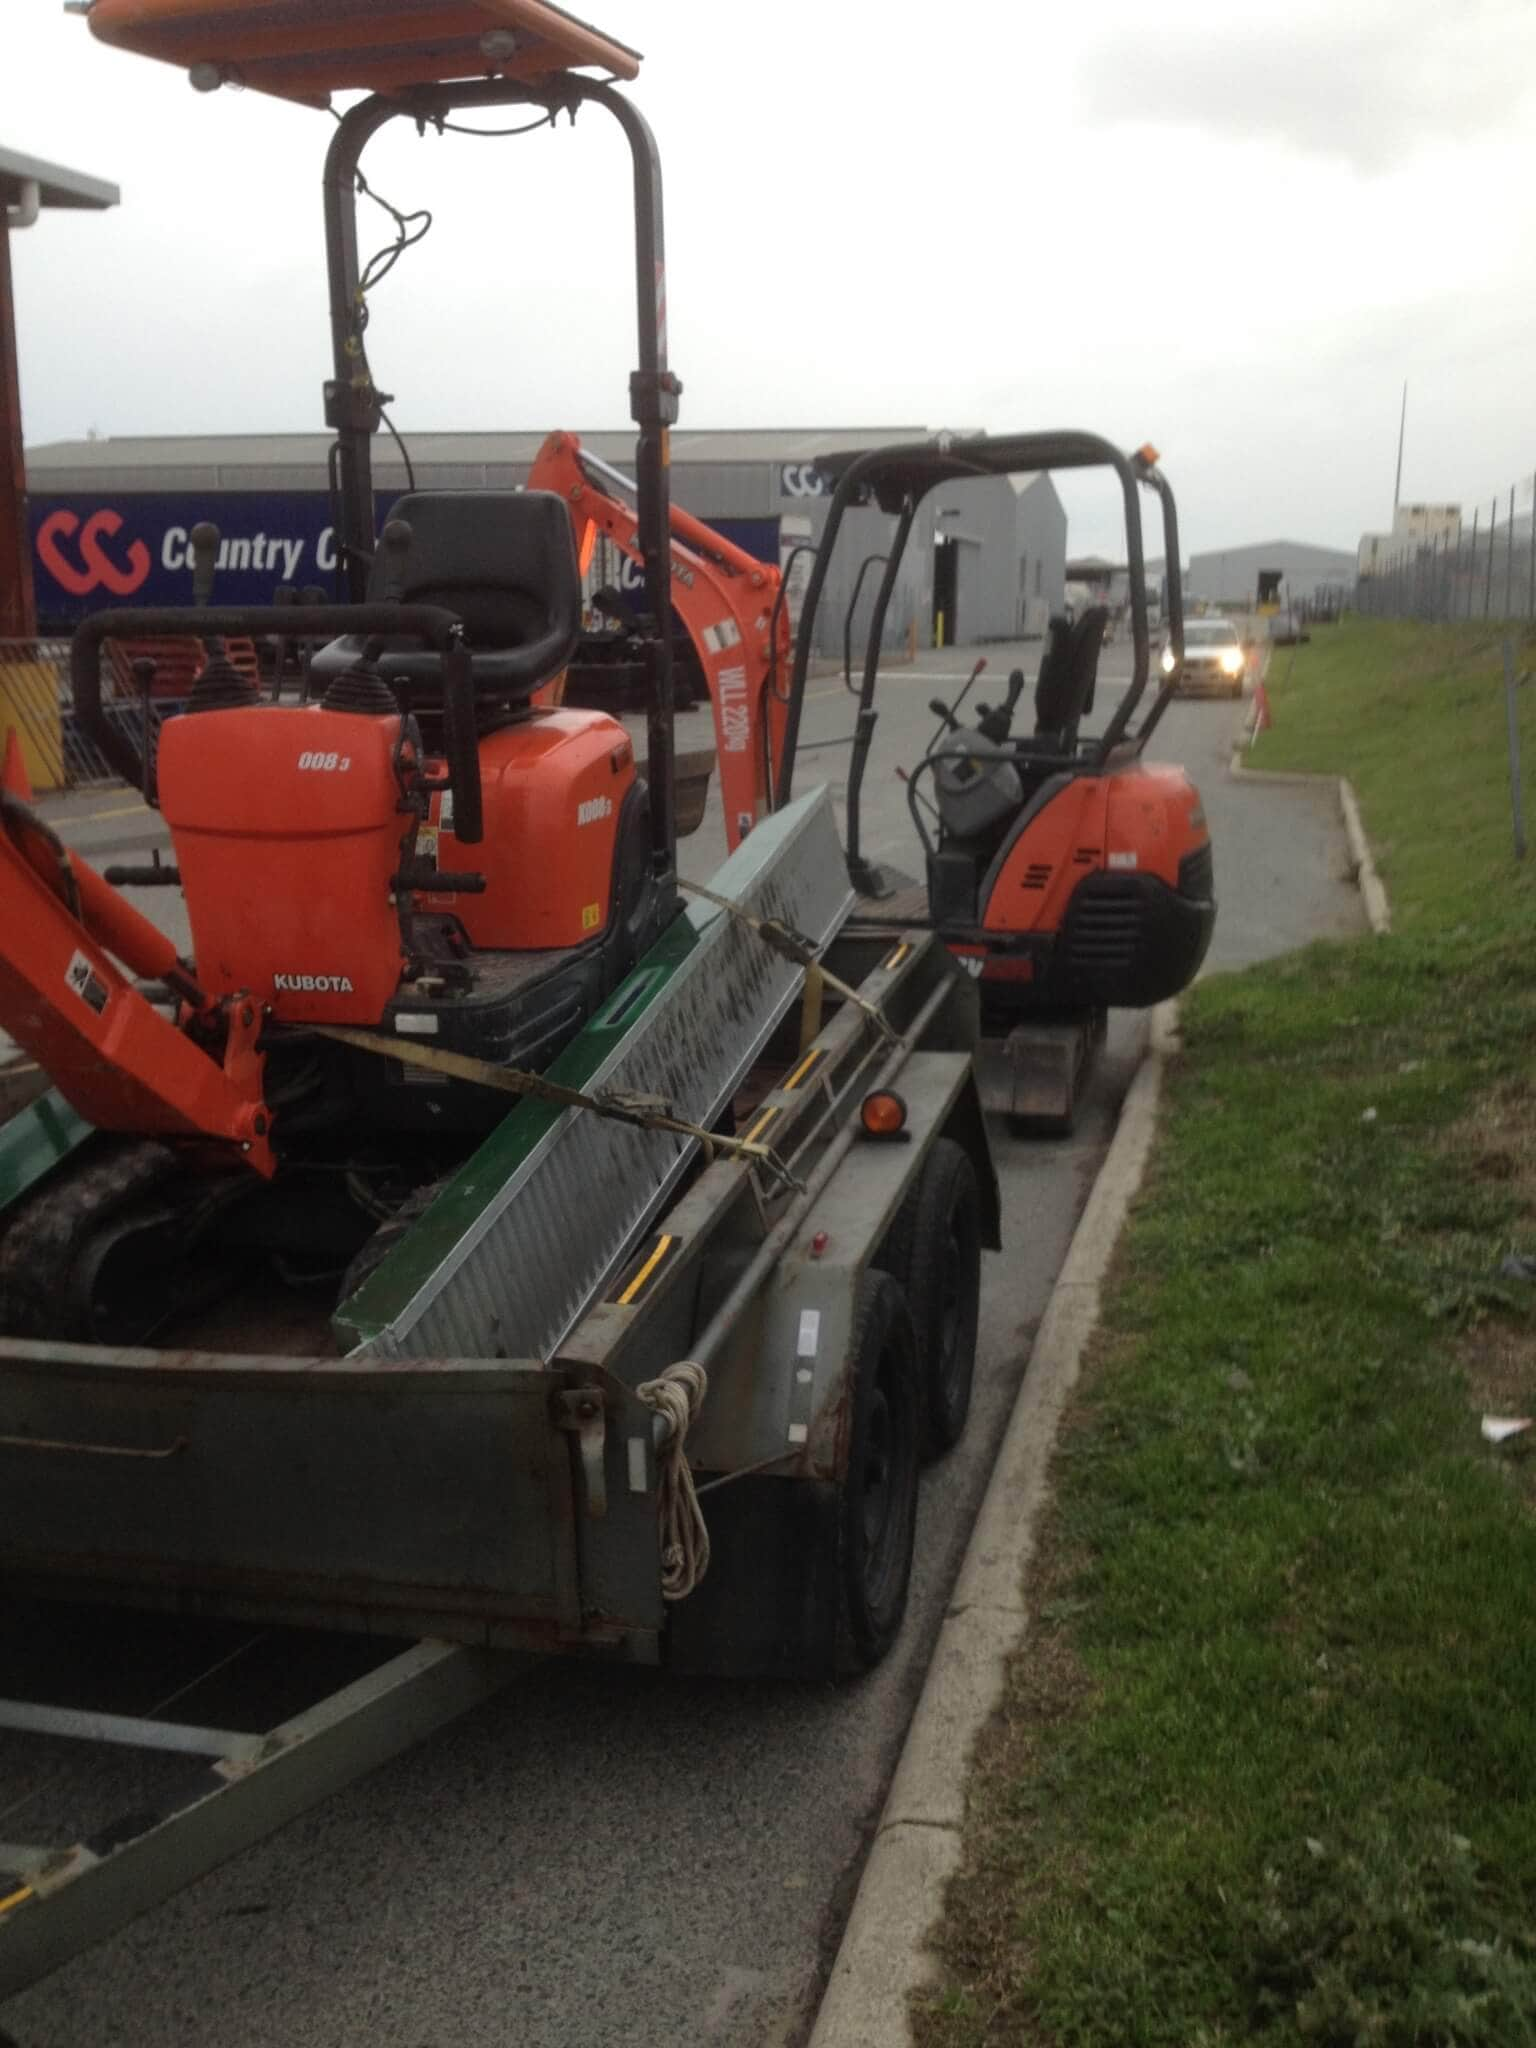 Everyday Plumbers Residential New Leach Drain Backfilling - Heavy Equipment in Service 2180